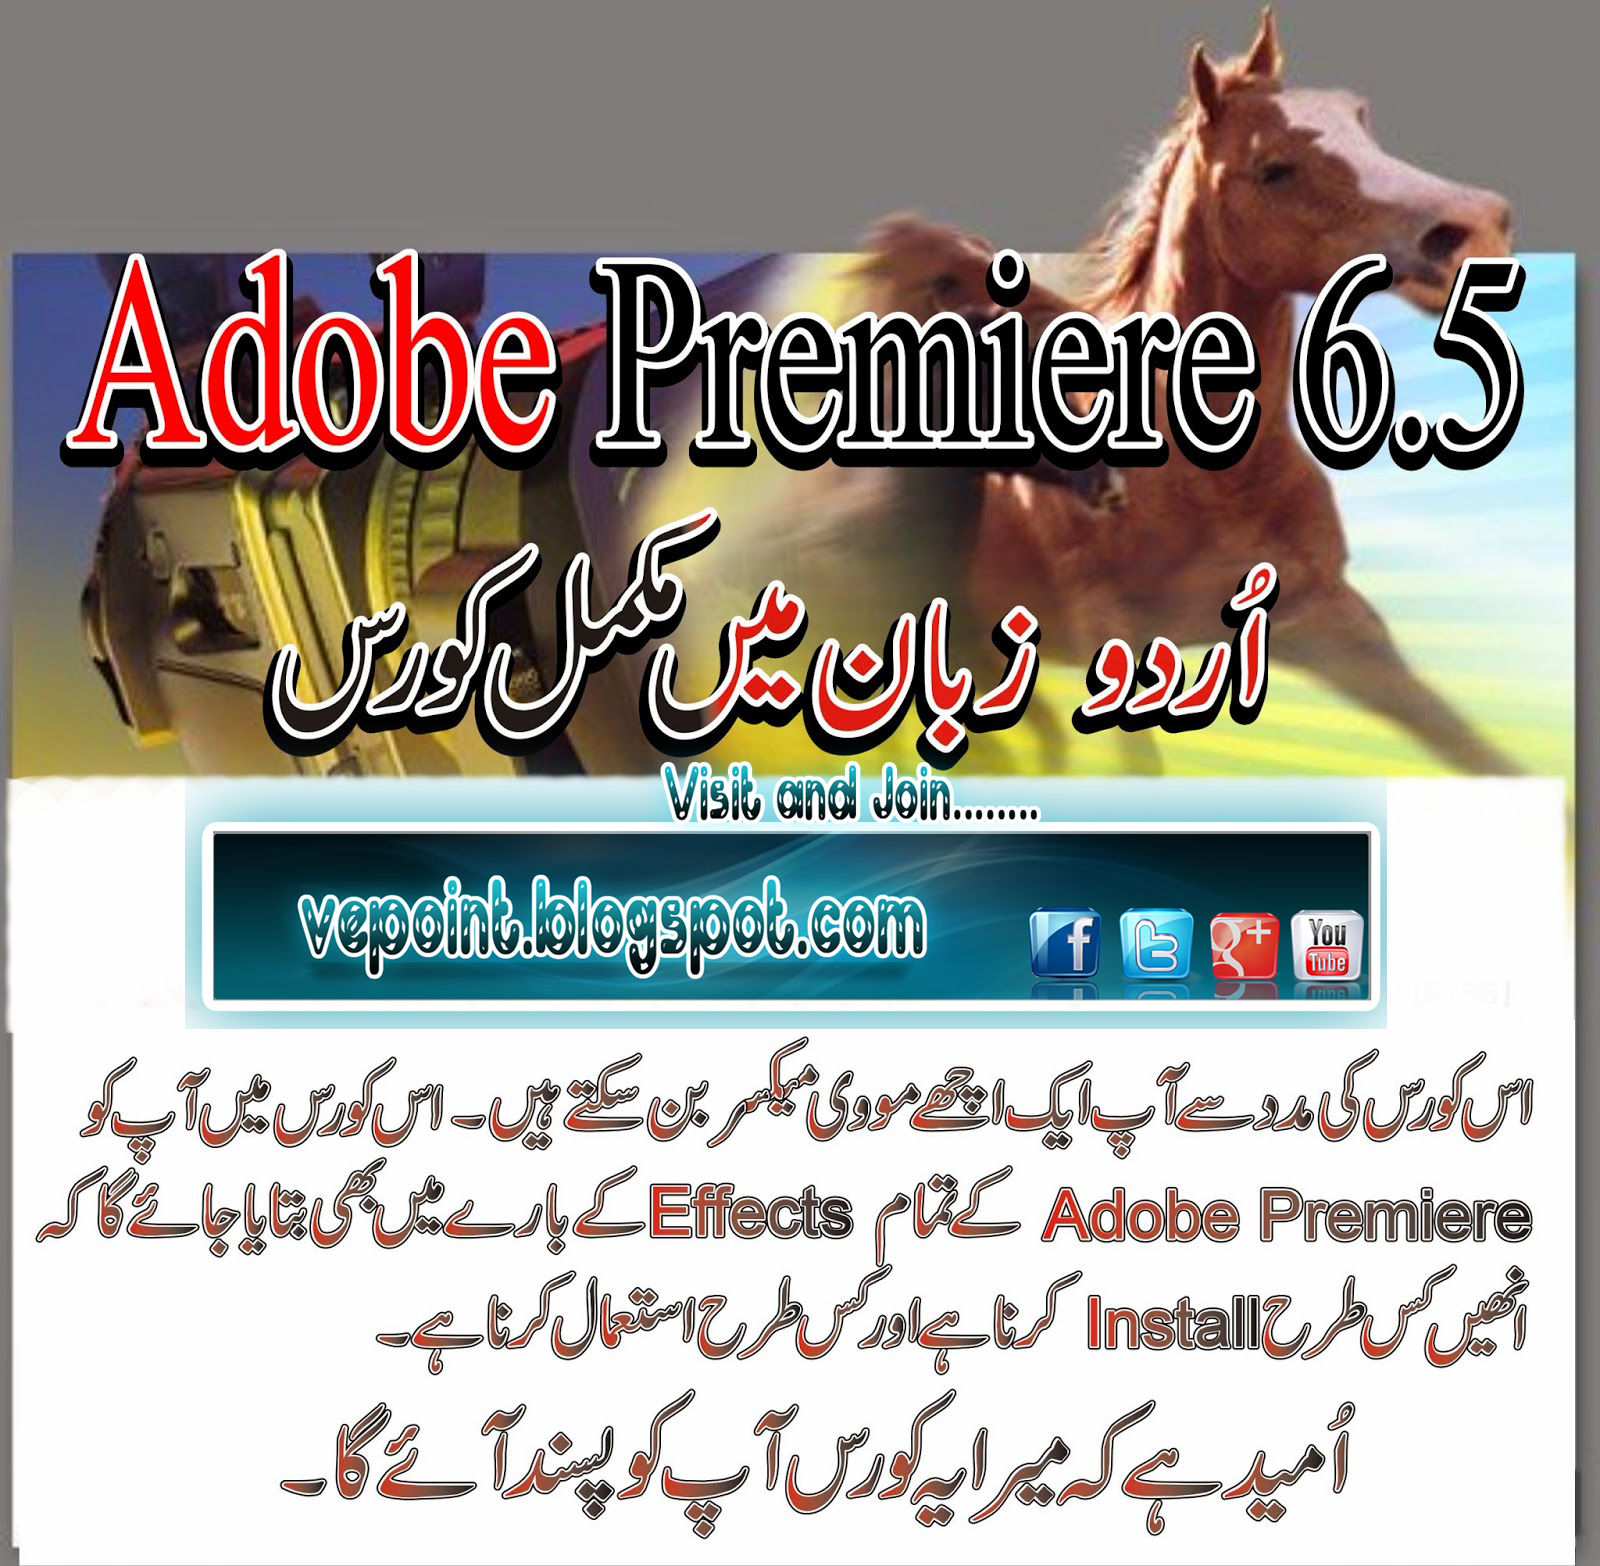 Video editing point adobe premiere 65 complete urdu course free adobe premiere 65 complete urdu course free download baditri Image collections